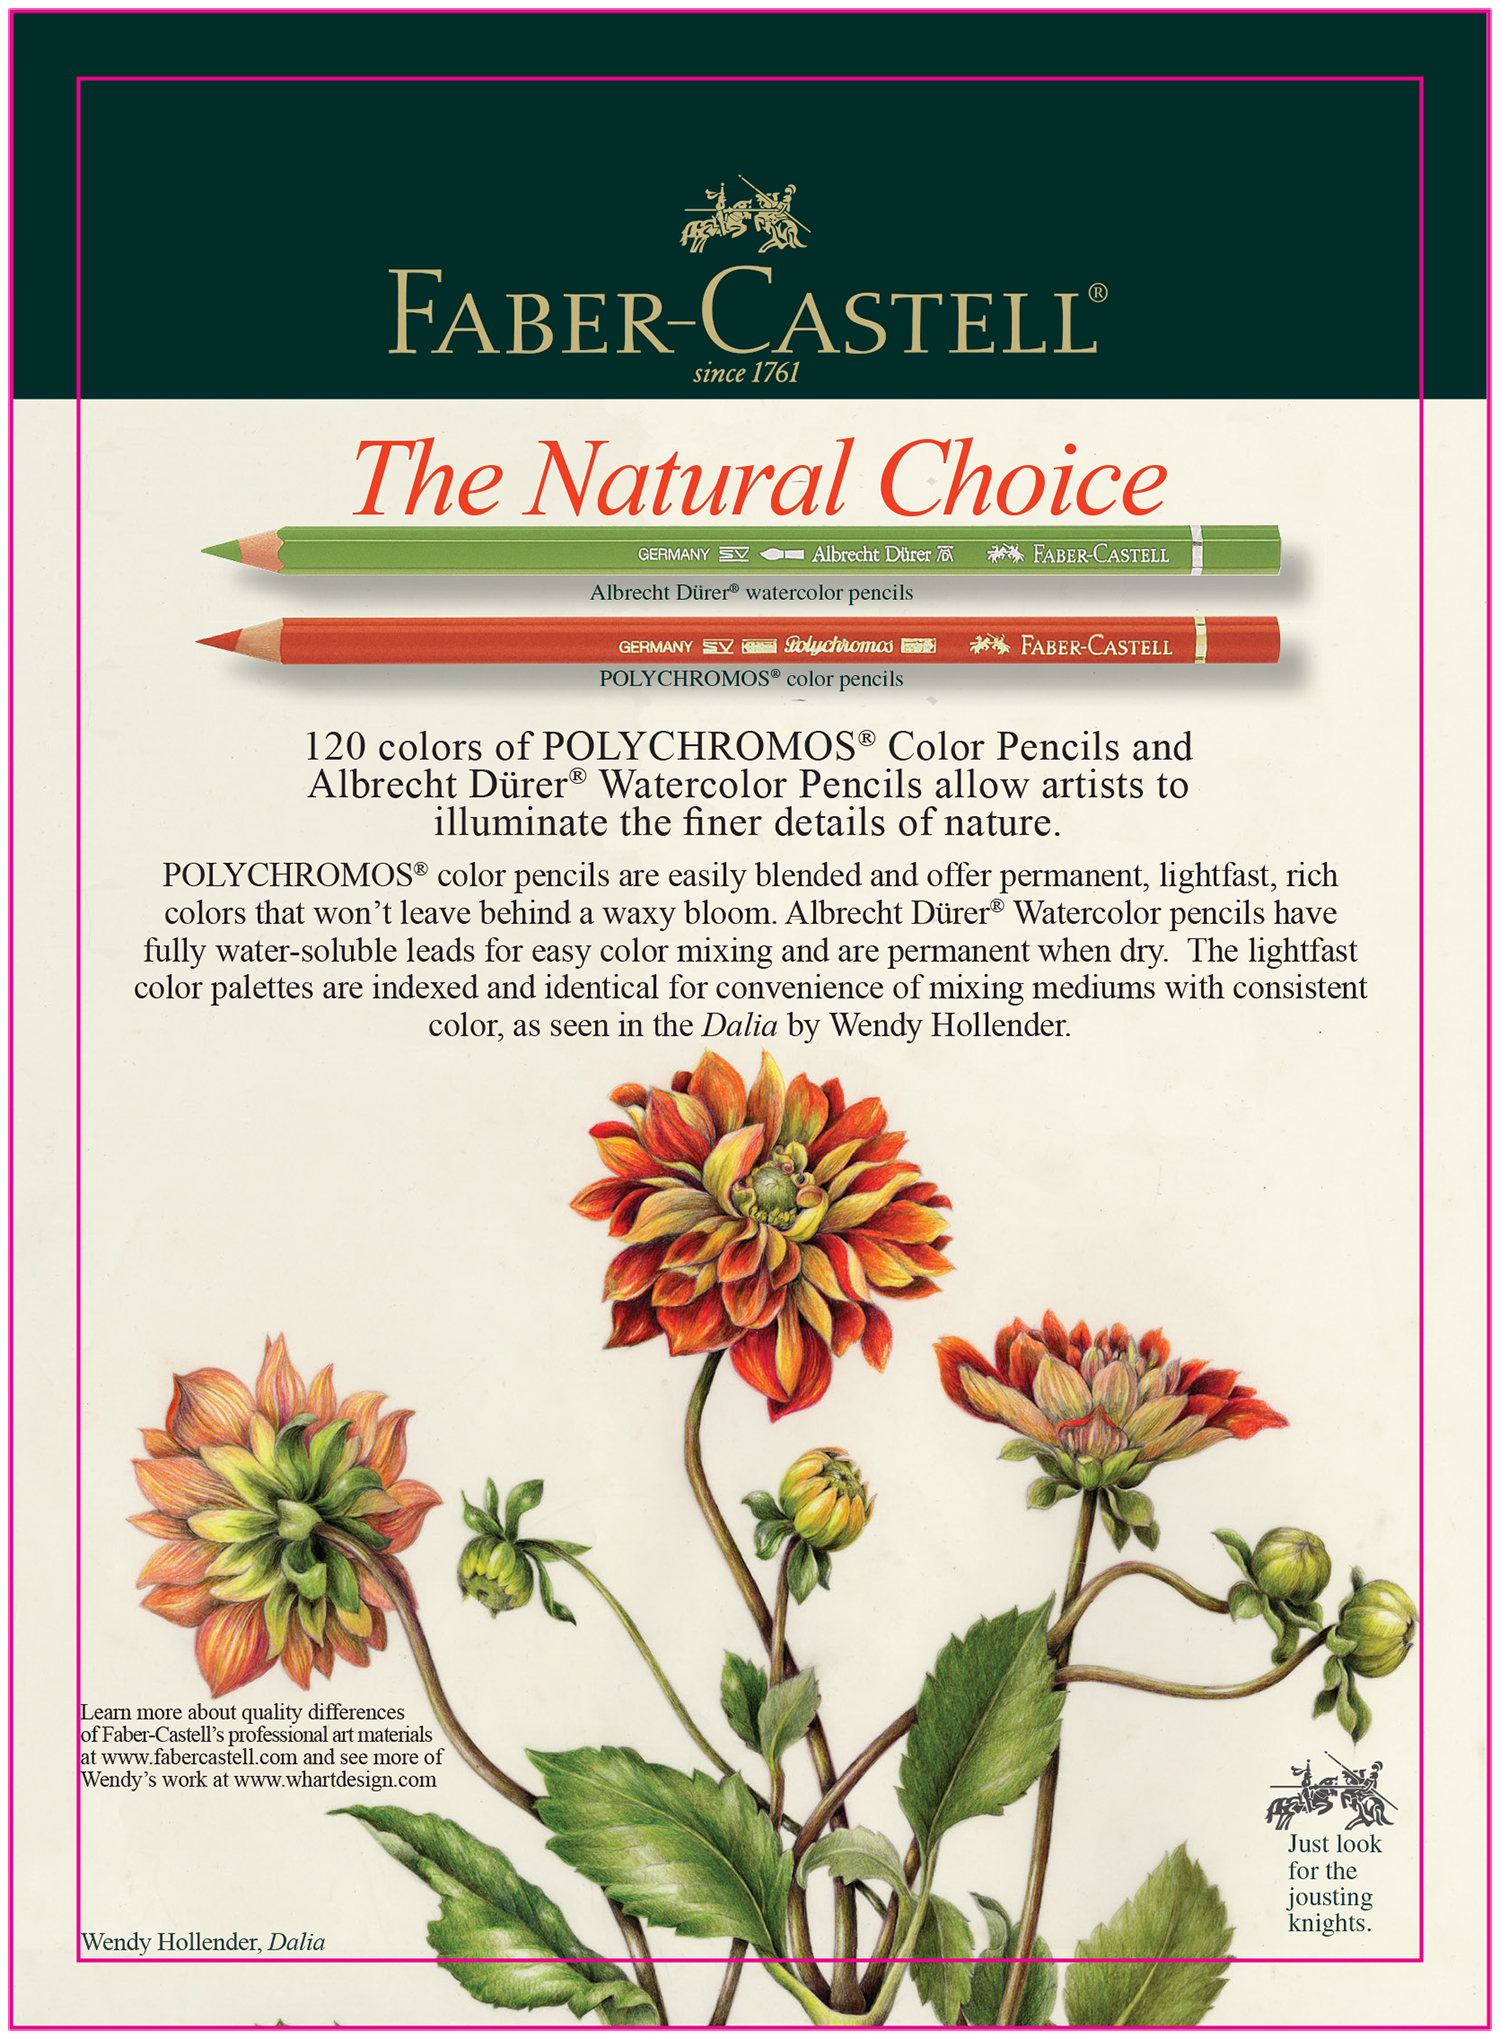 FABER-CASTELL  2010-present Illustrations for Faber-Castell's national advertising campaign.